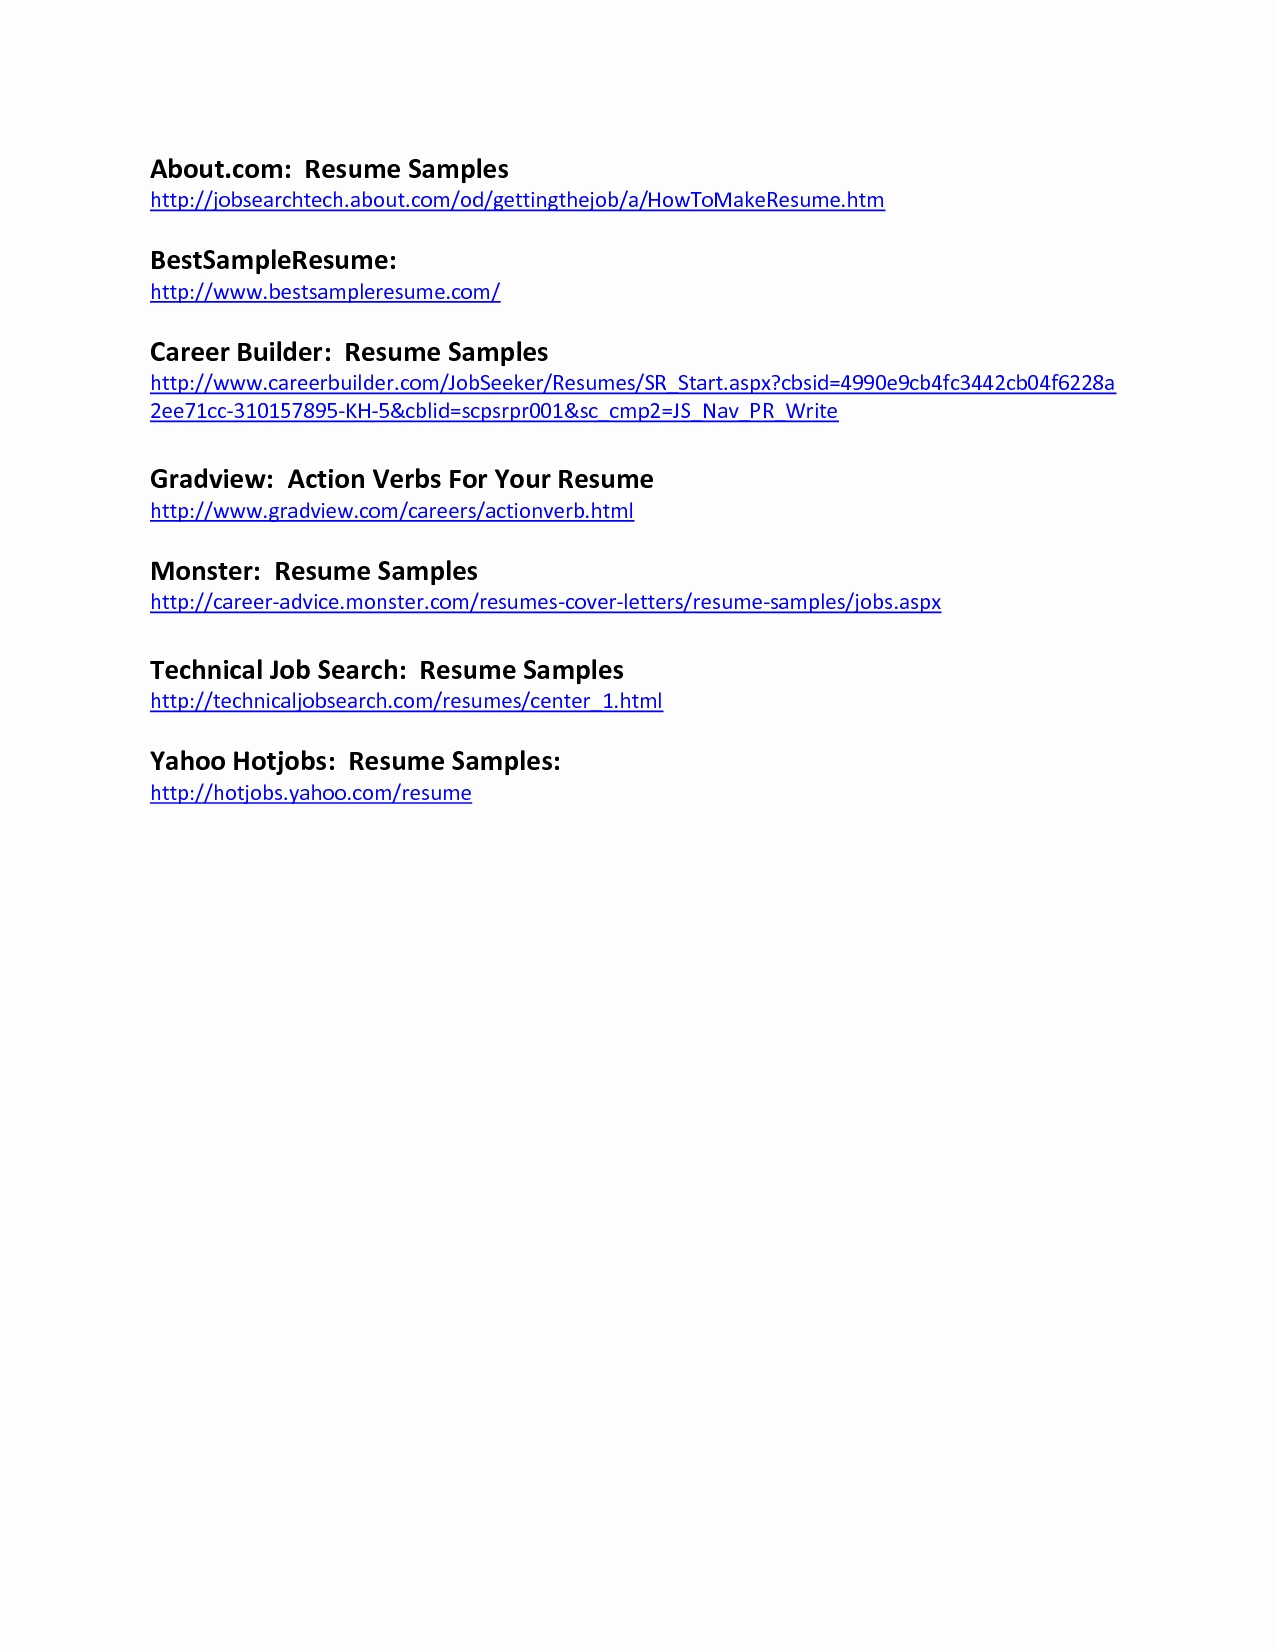 Ucla Resume Template - Michigan Works Resume Maker Elegant Getting Help with Citation Style